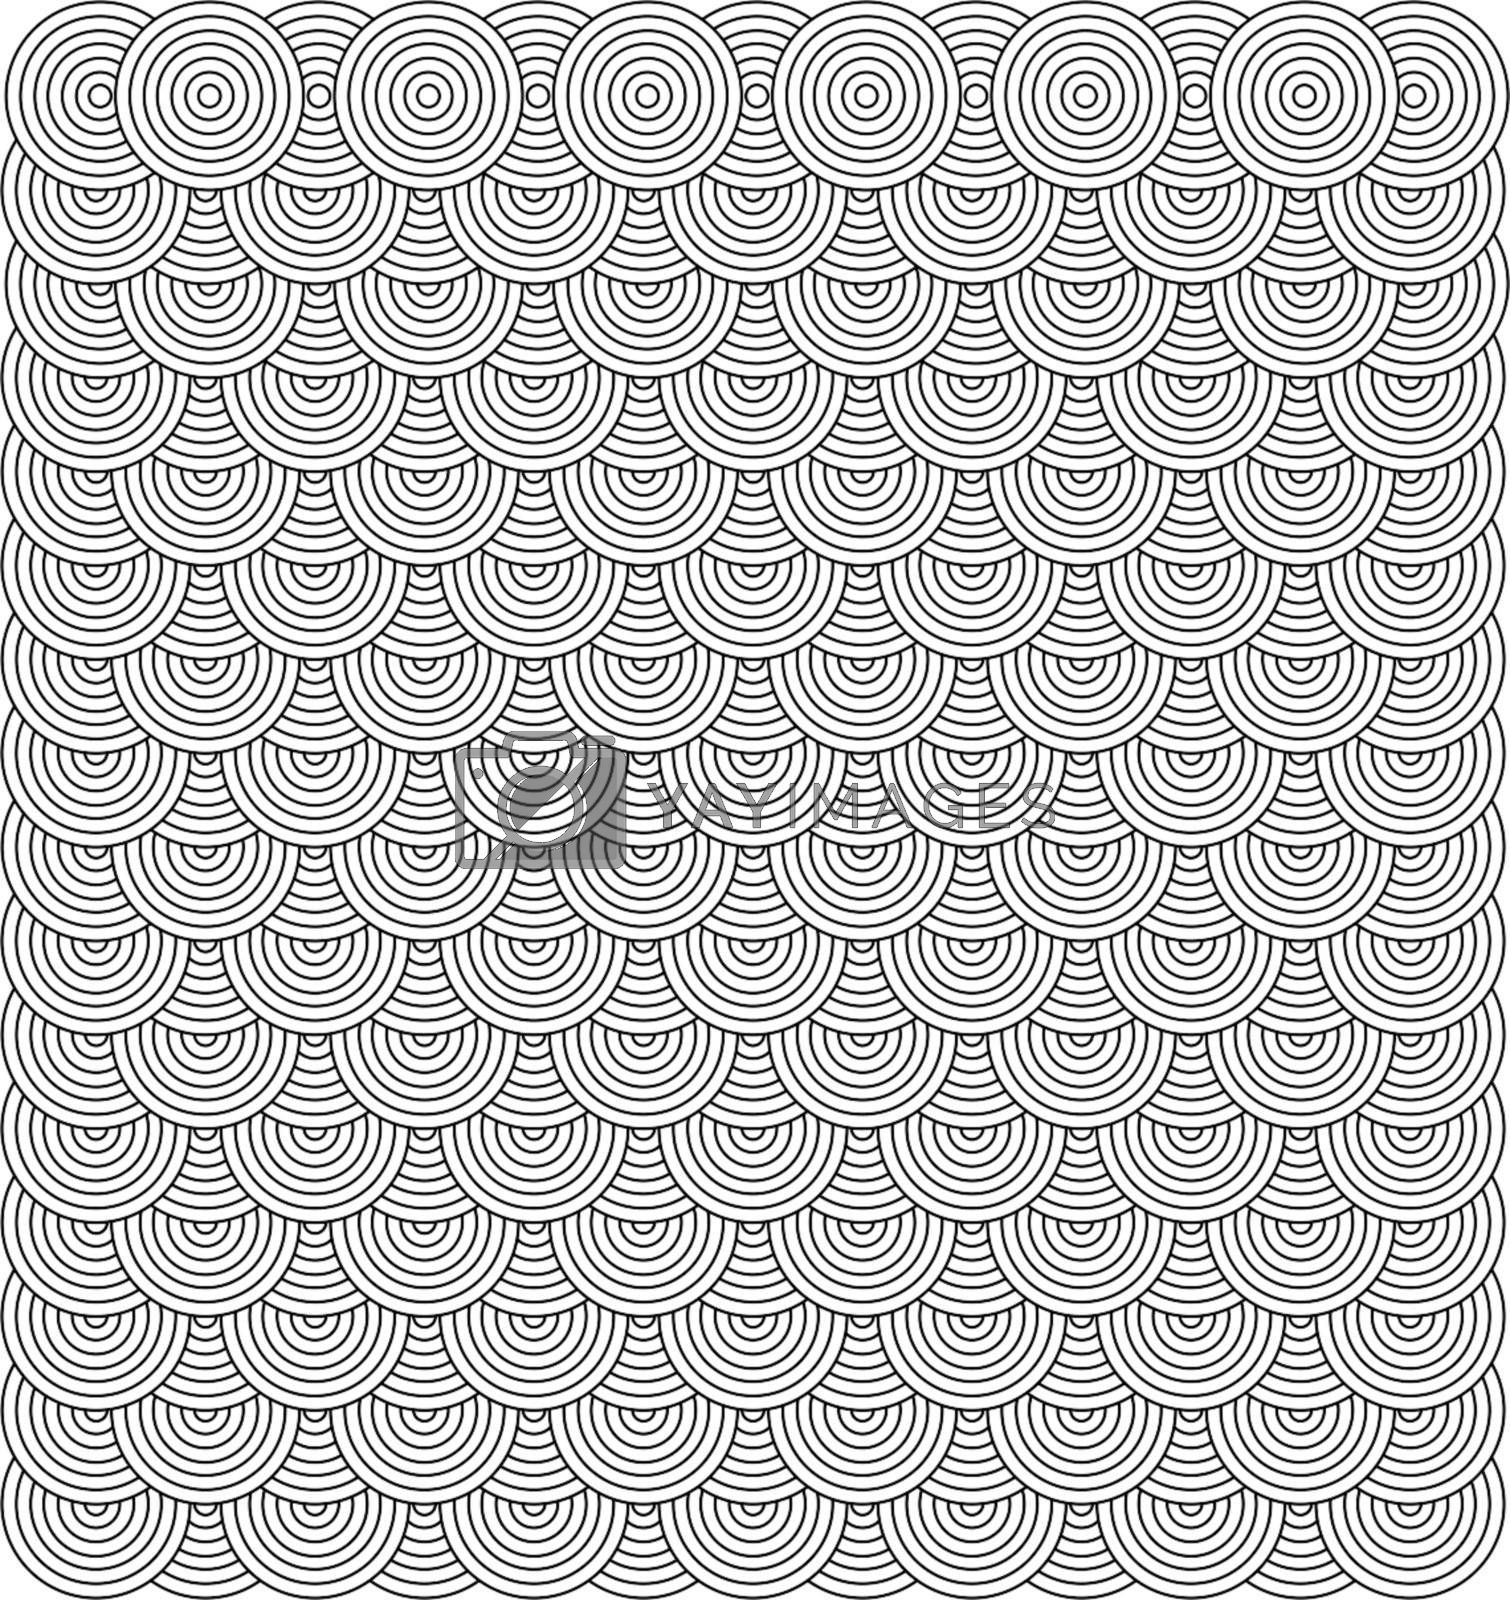 Seamless repeating seventies inspired wallpaper design in black and white